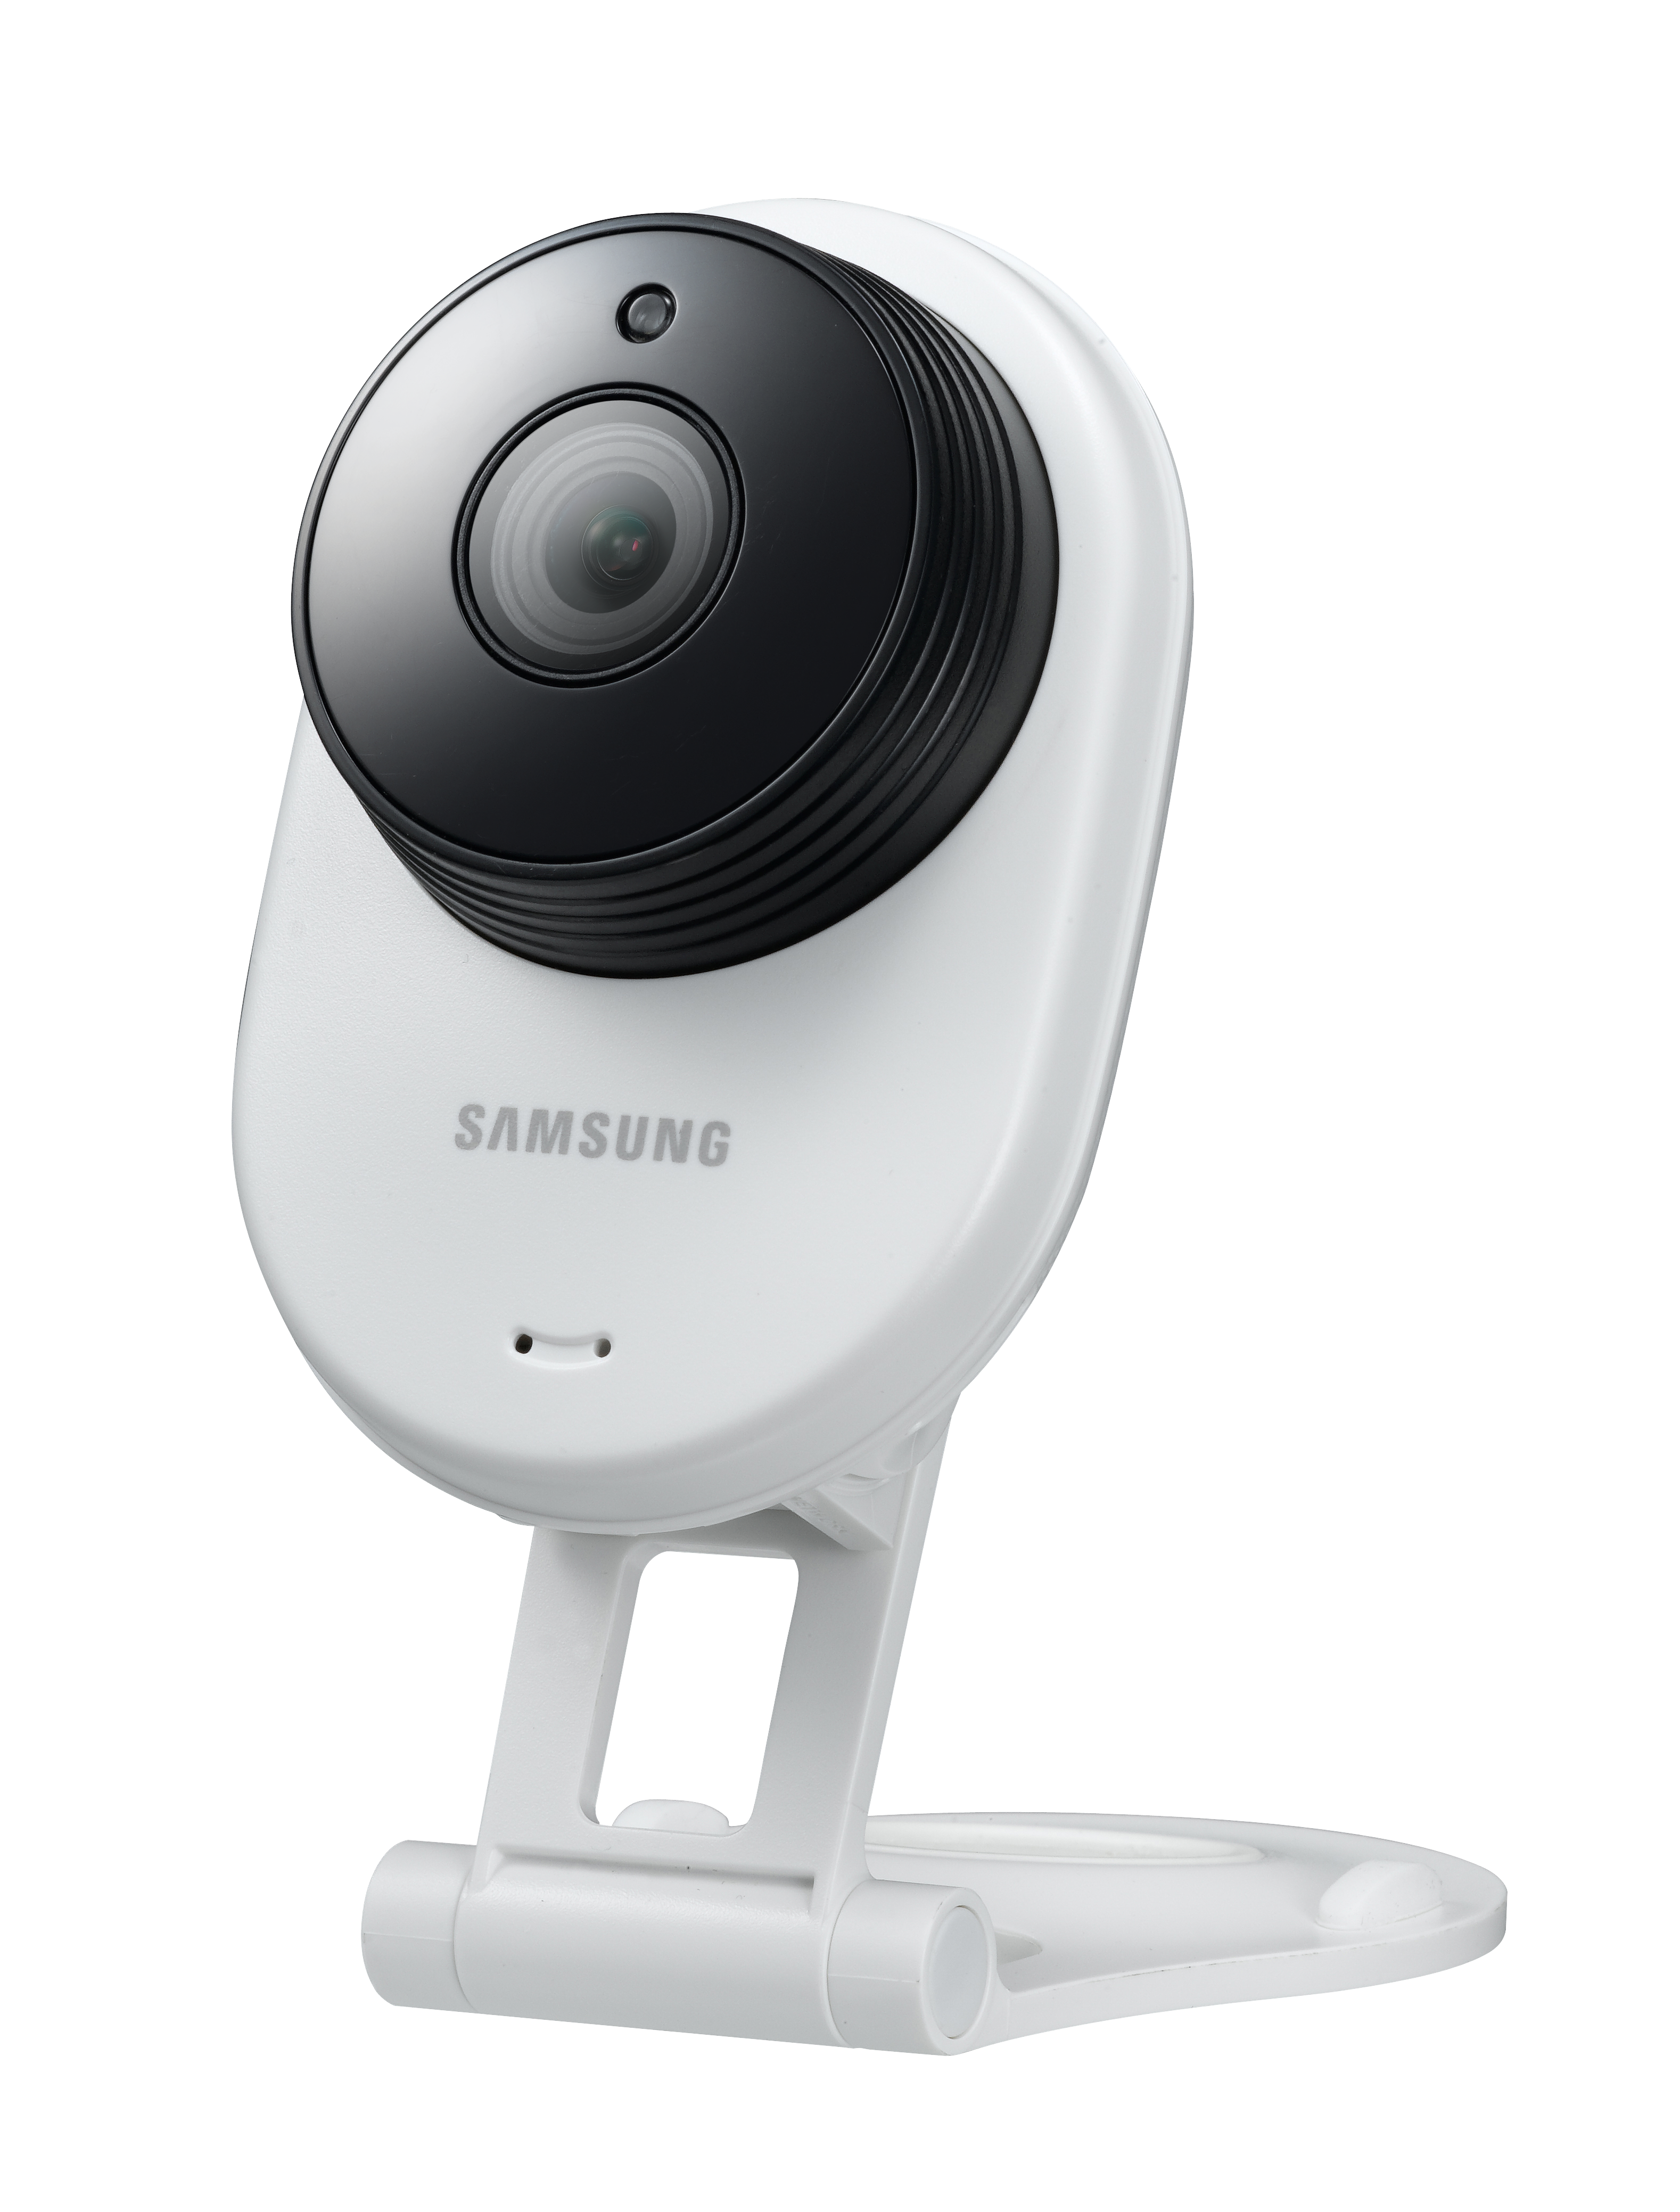 samsung launches low cost 1080p smartcam hd wifi home camera the rh digitalnewsroom media Samsung DVR Recorder Security System Samsung 6 Camera Surveillance System